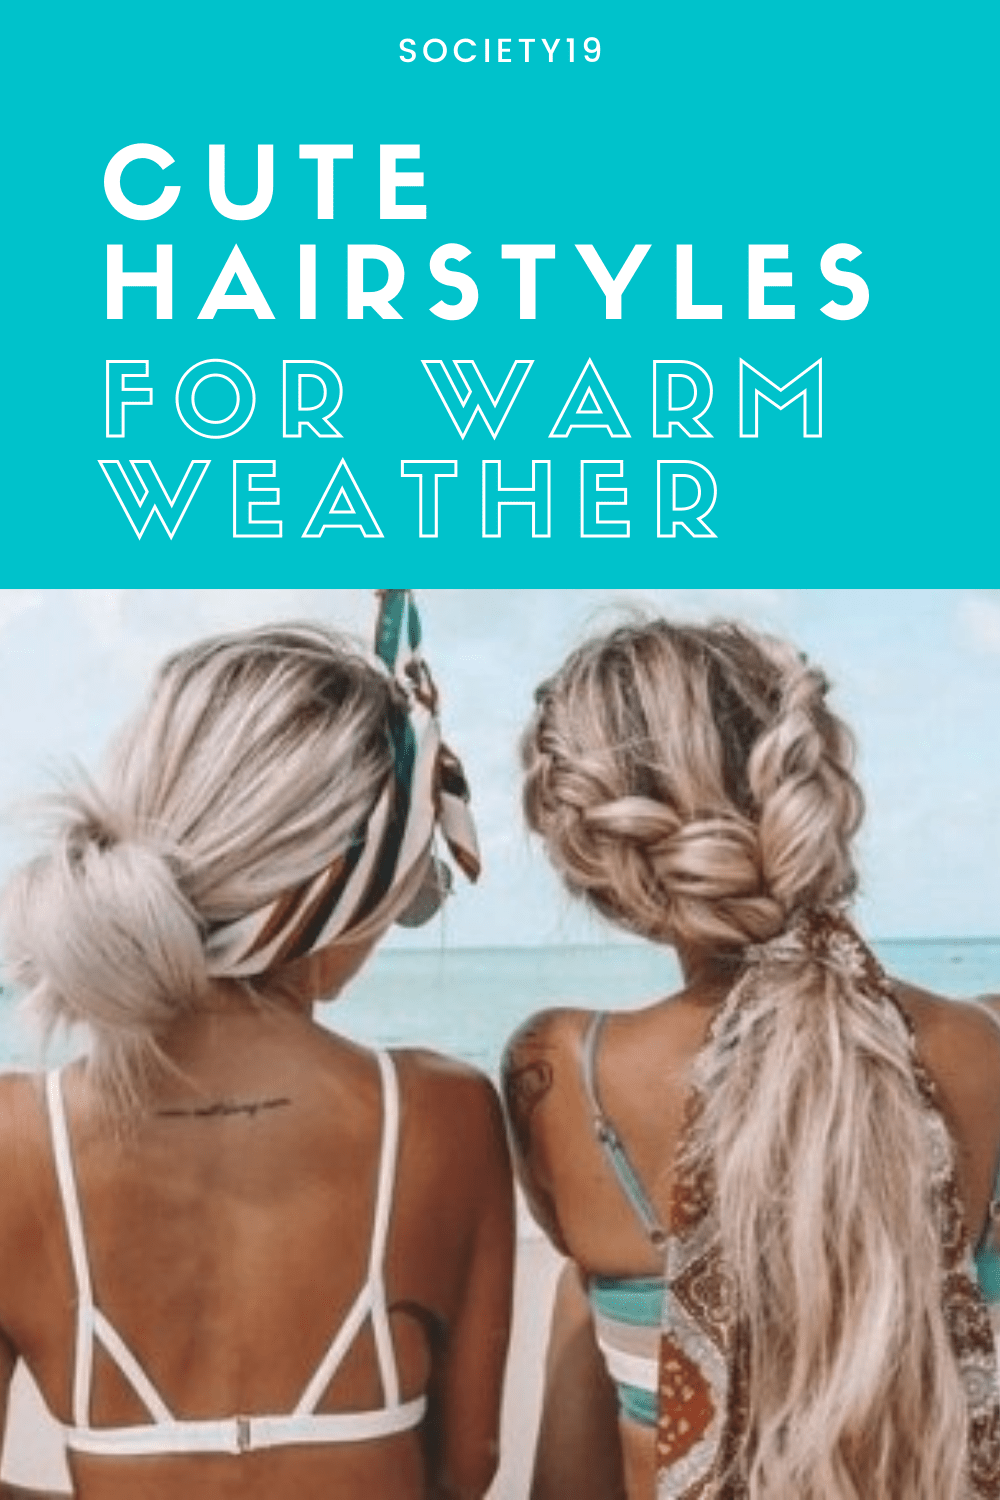 Cute Hairstyles For Warm Weather Society19 In 2020 Cute Hairstyles Warm Weather Hair Hot Hair Styles